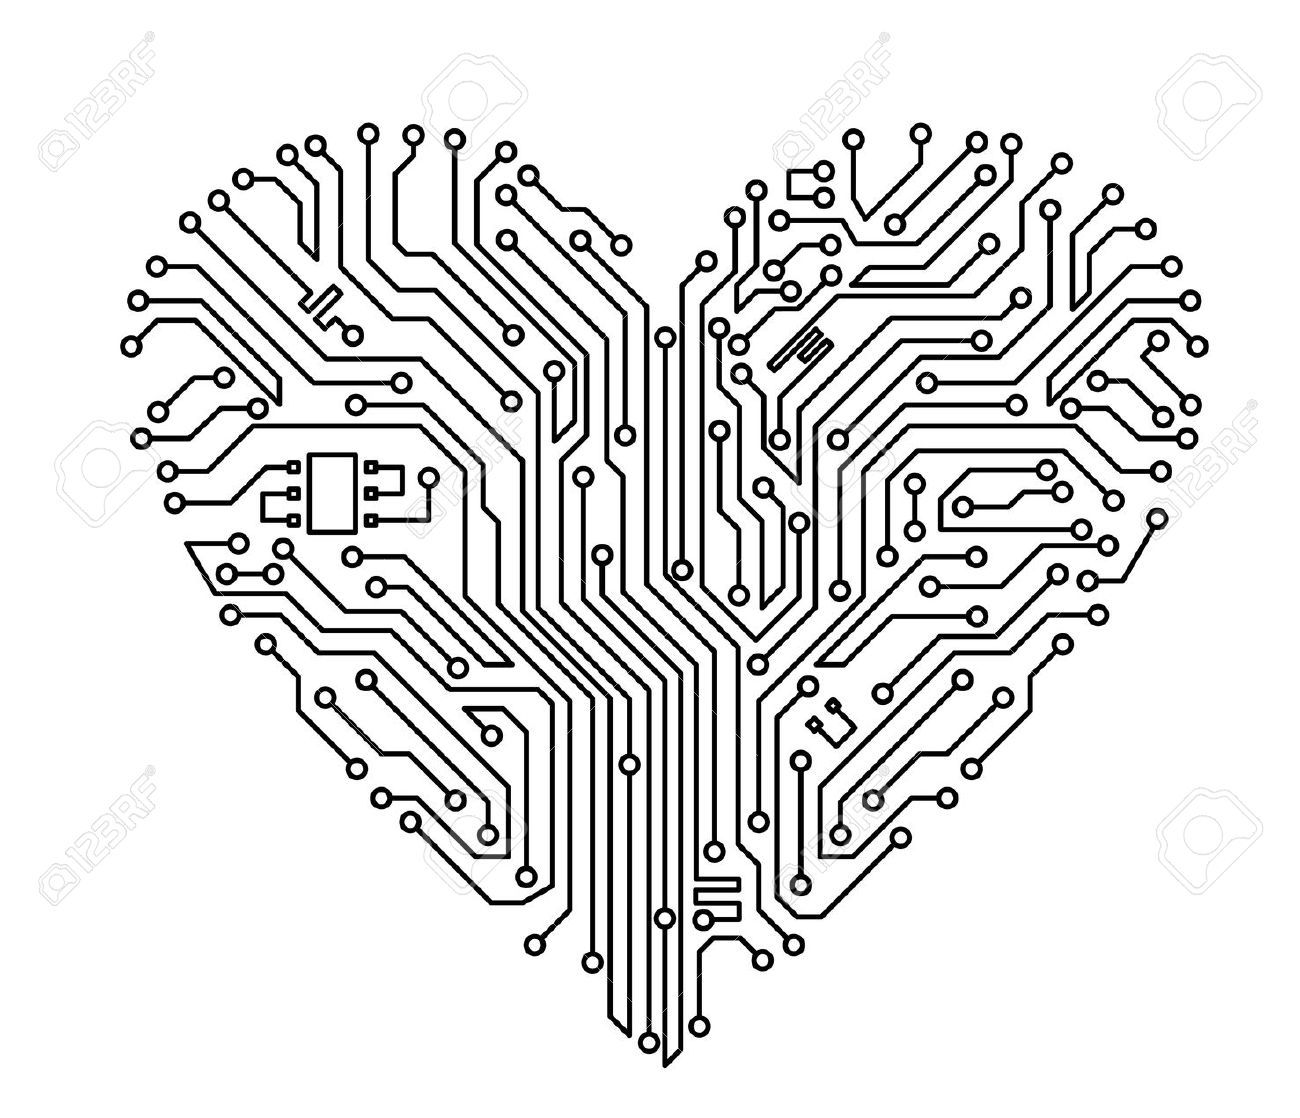 computer heart with motherboard elements for technology